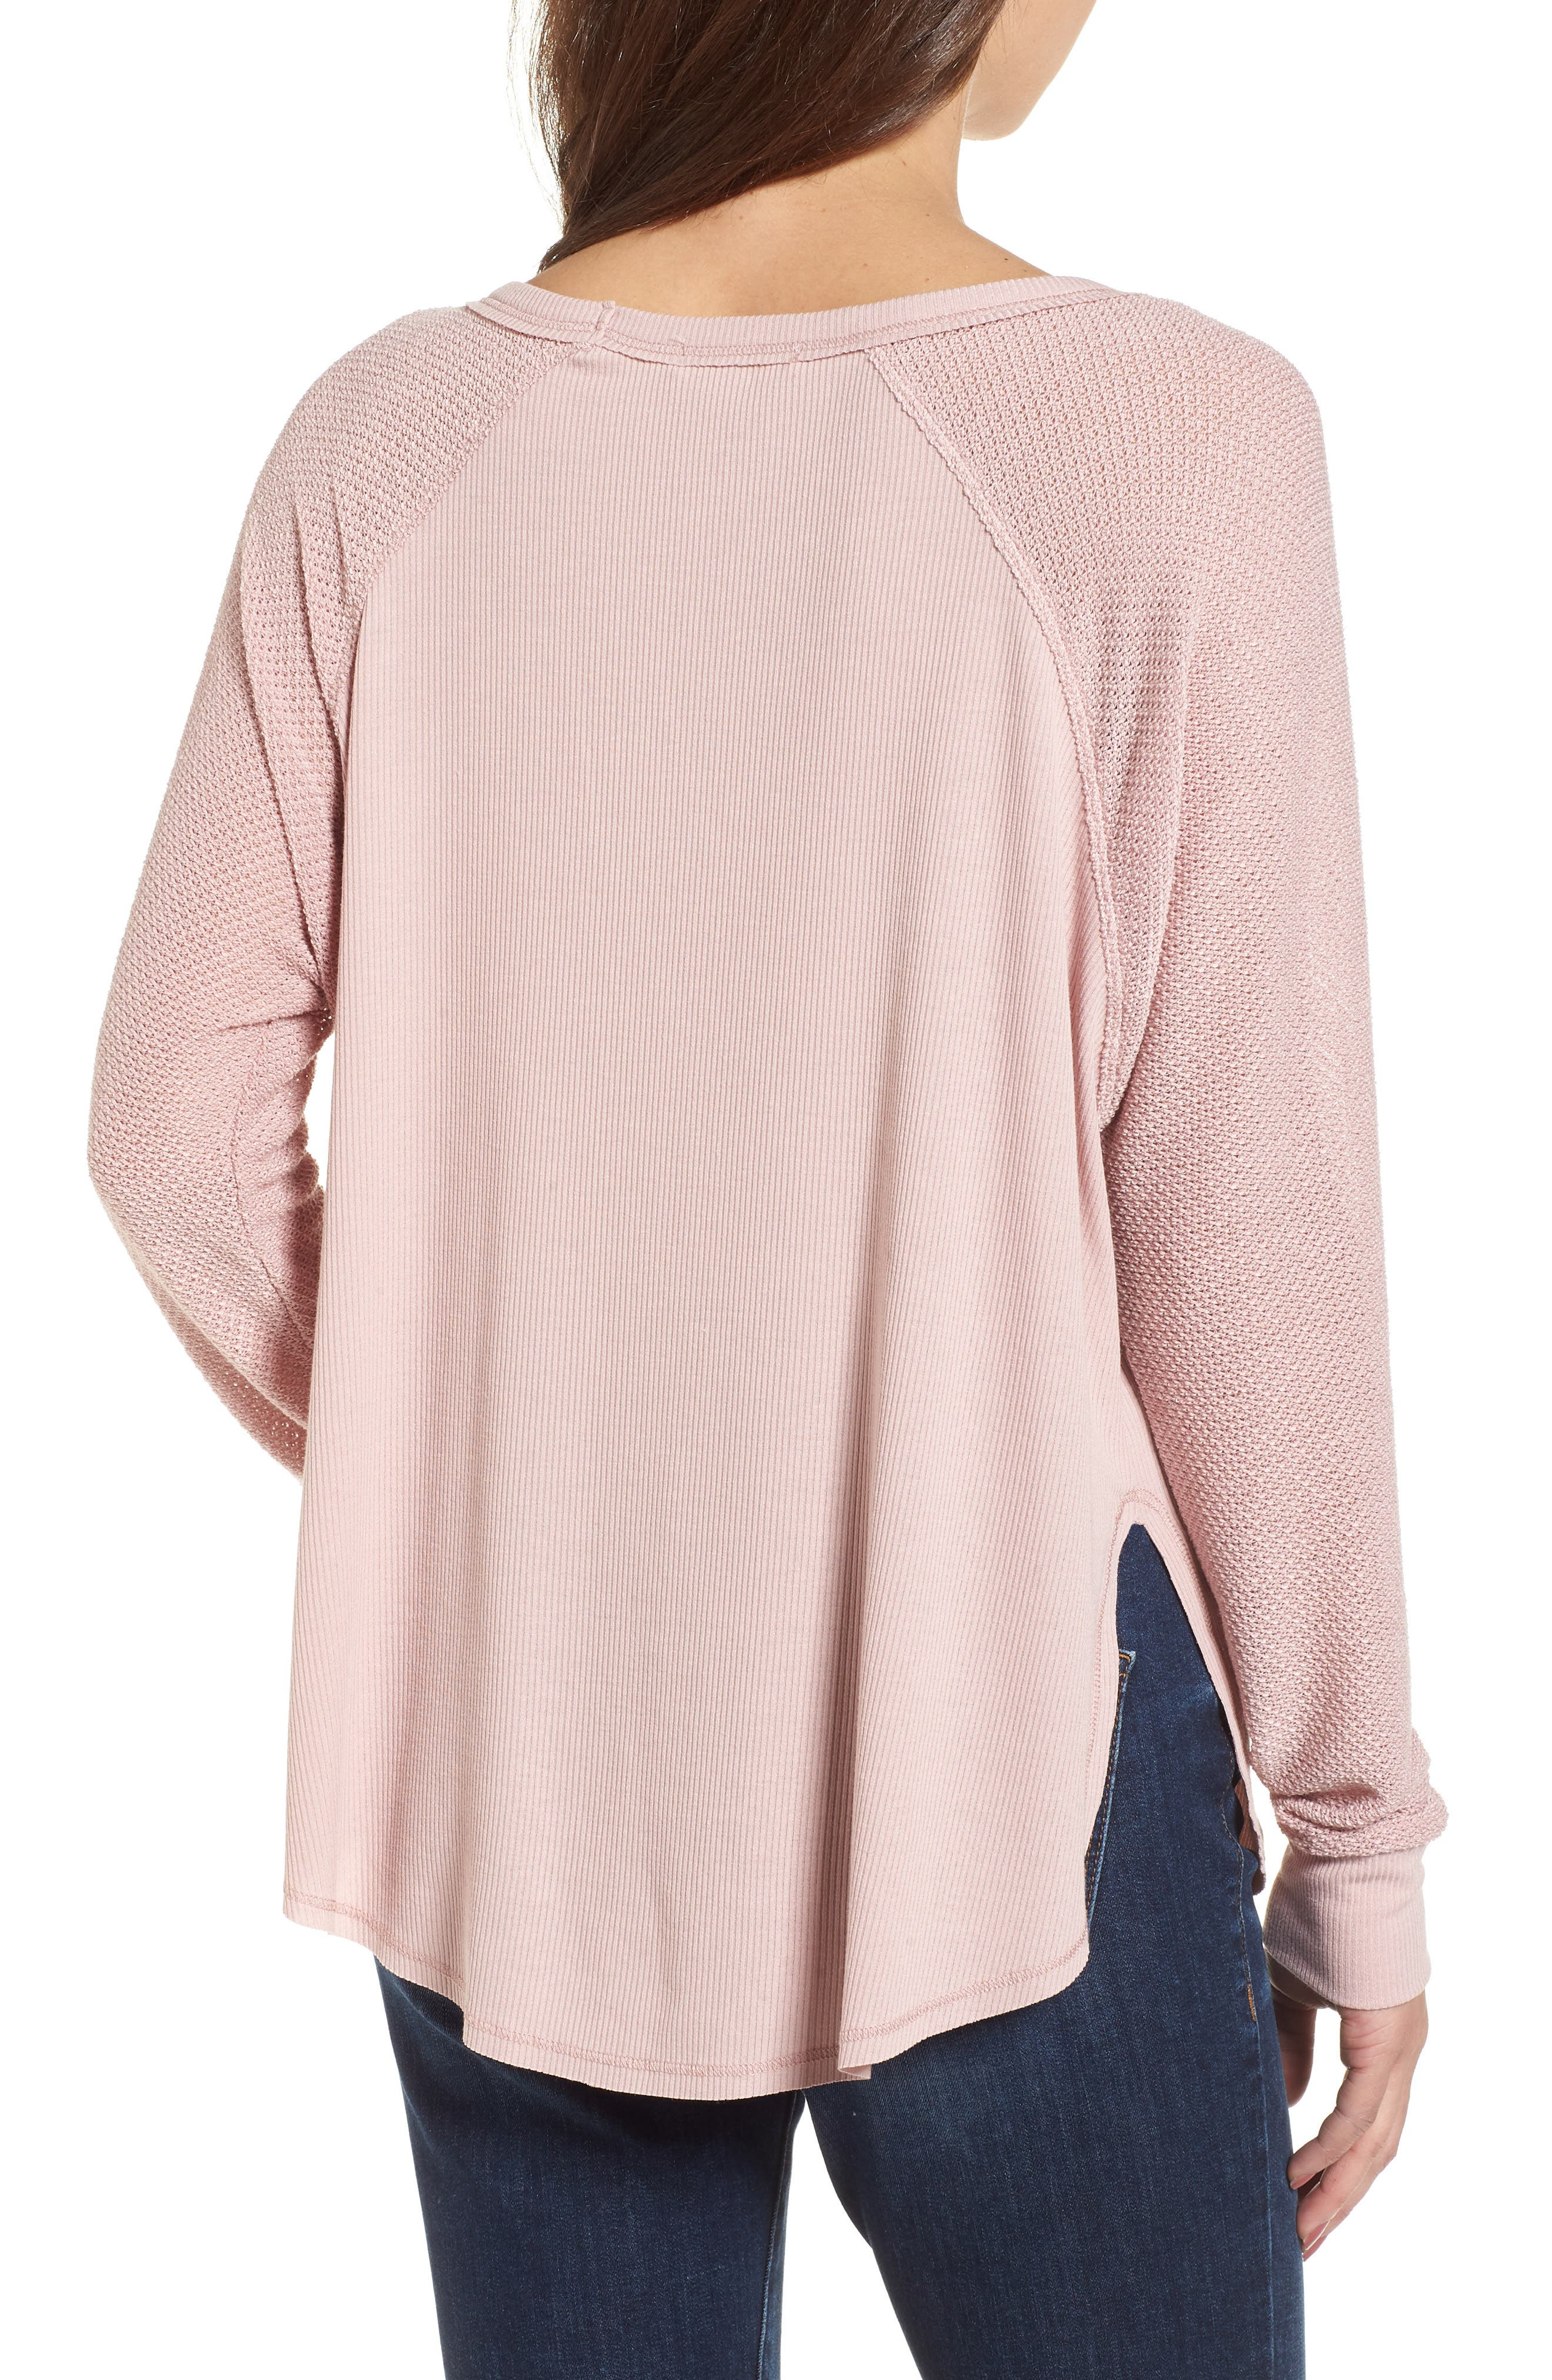 Contrast Sleeve Thermal Top,                             Alternate thumbnail 4, color,